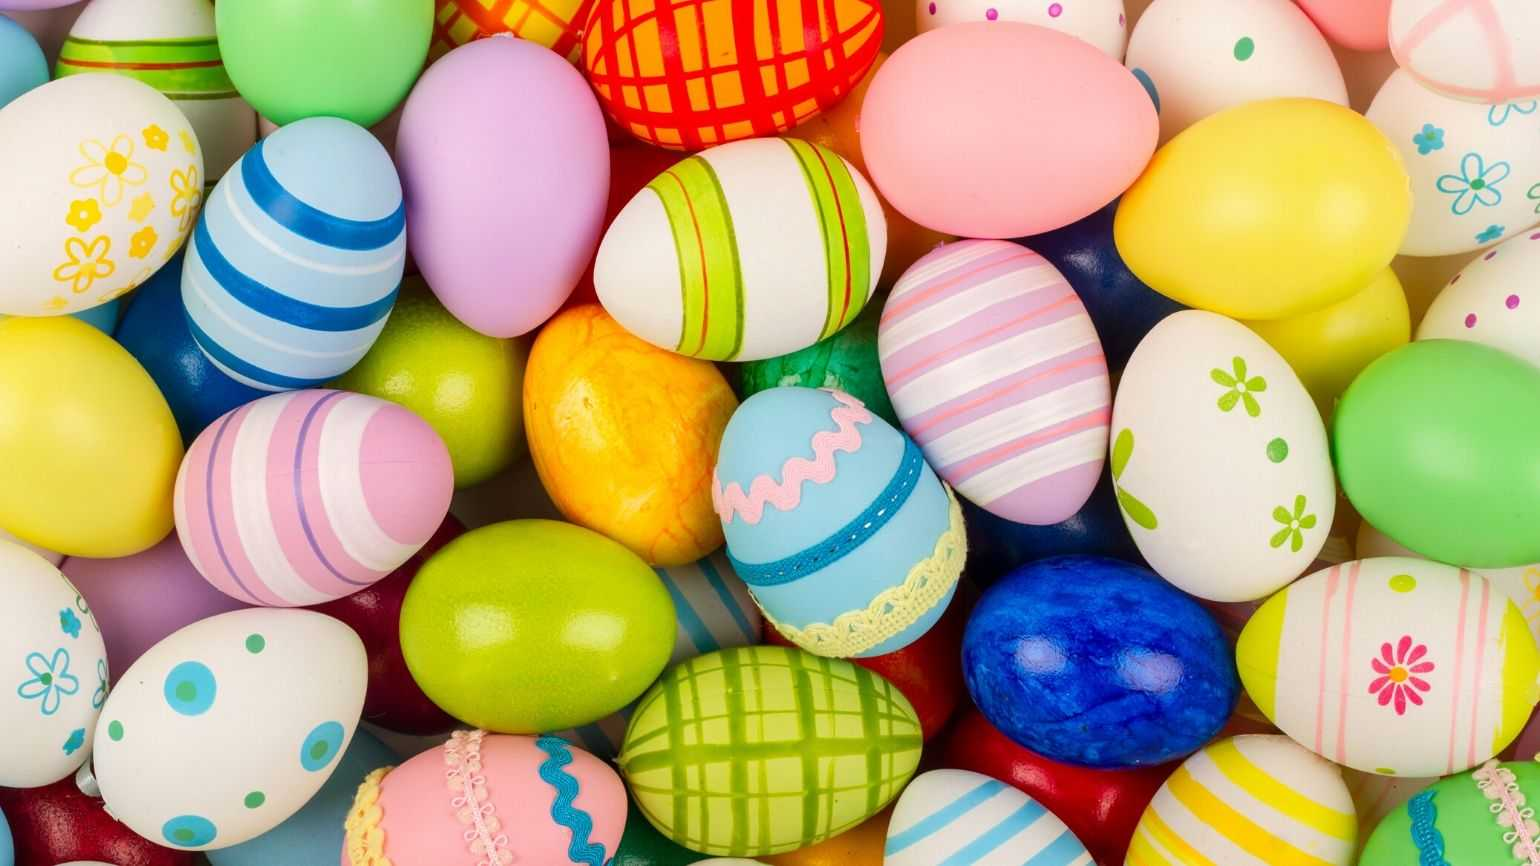 A pile of painted Easter eggs